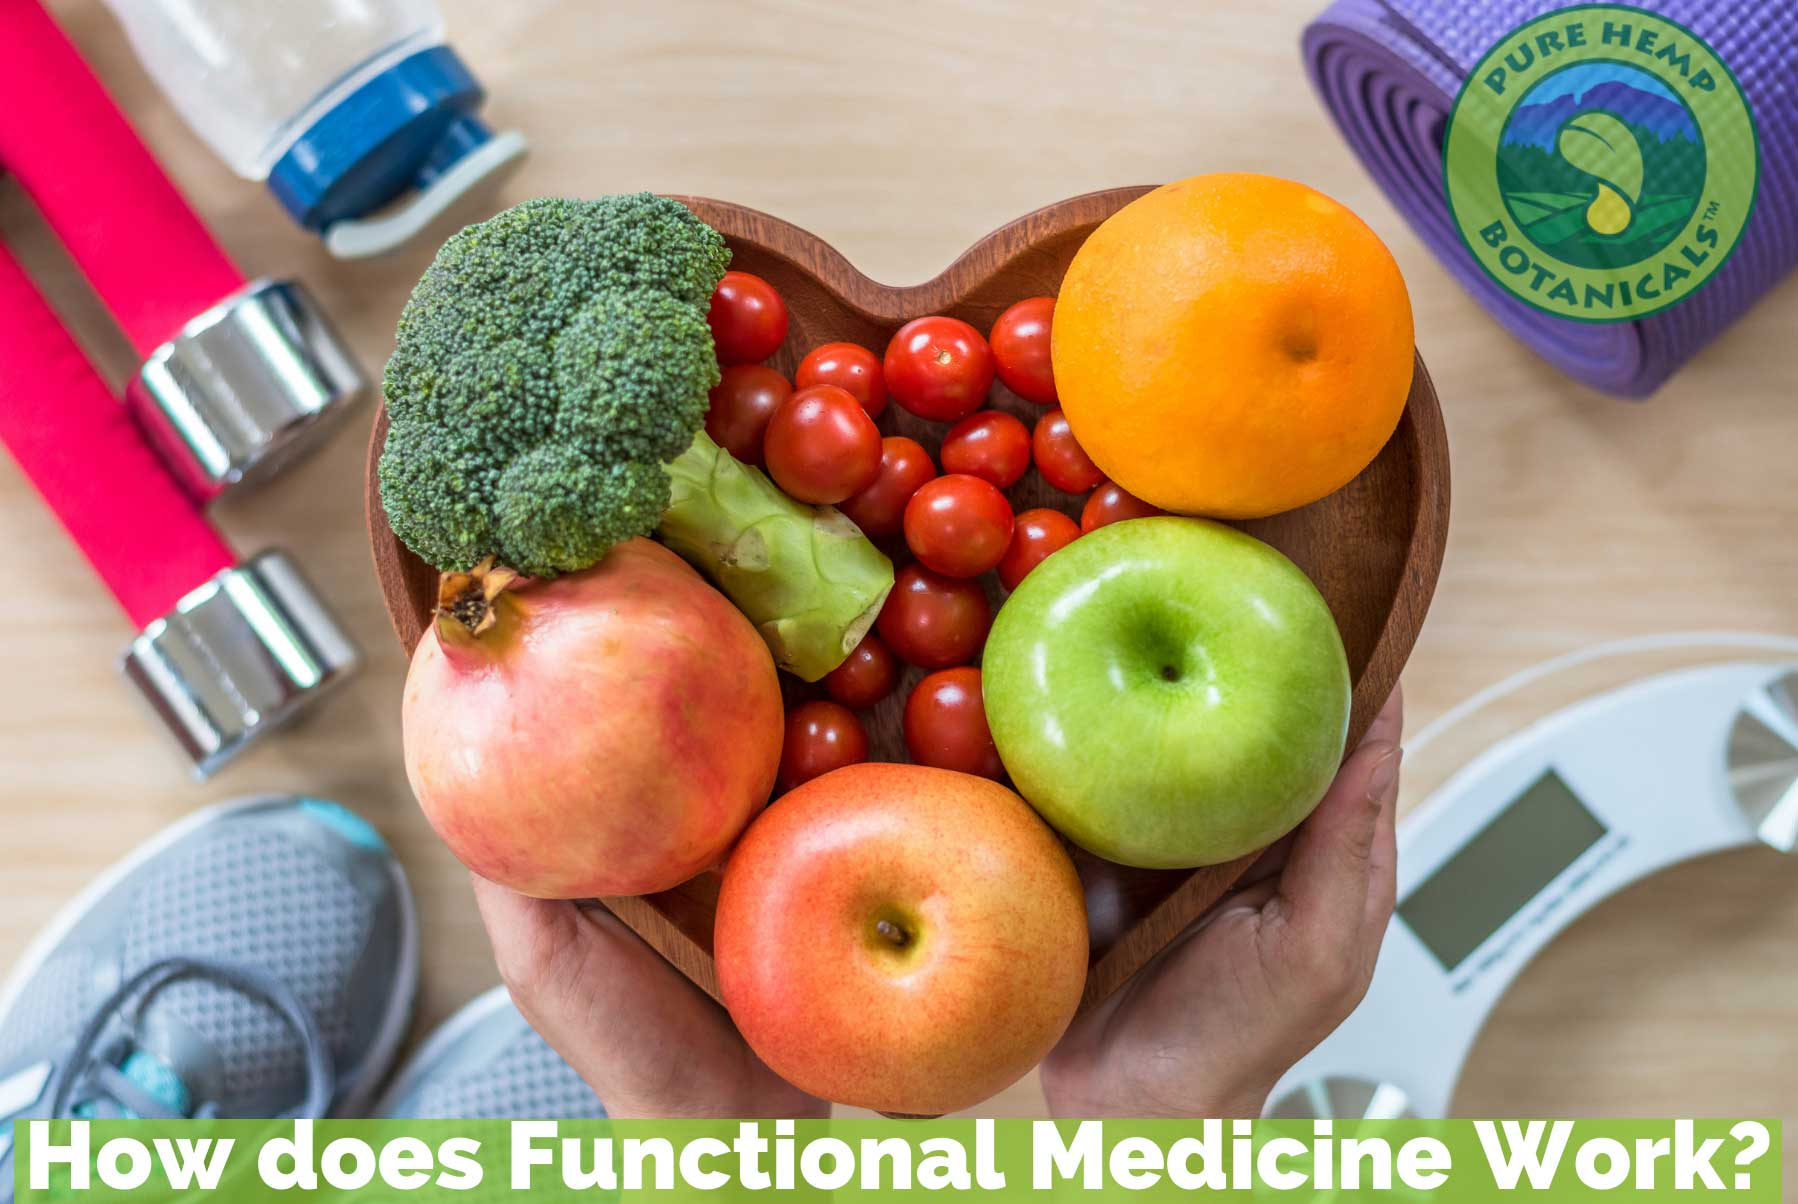 How does Functional Medicine Work?